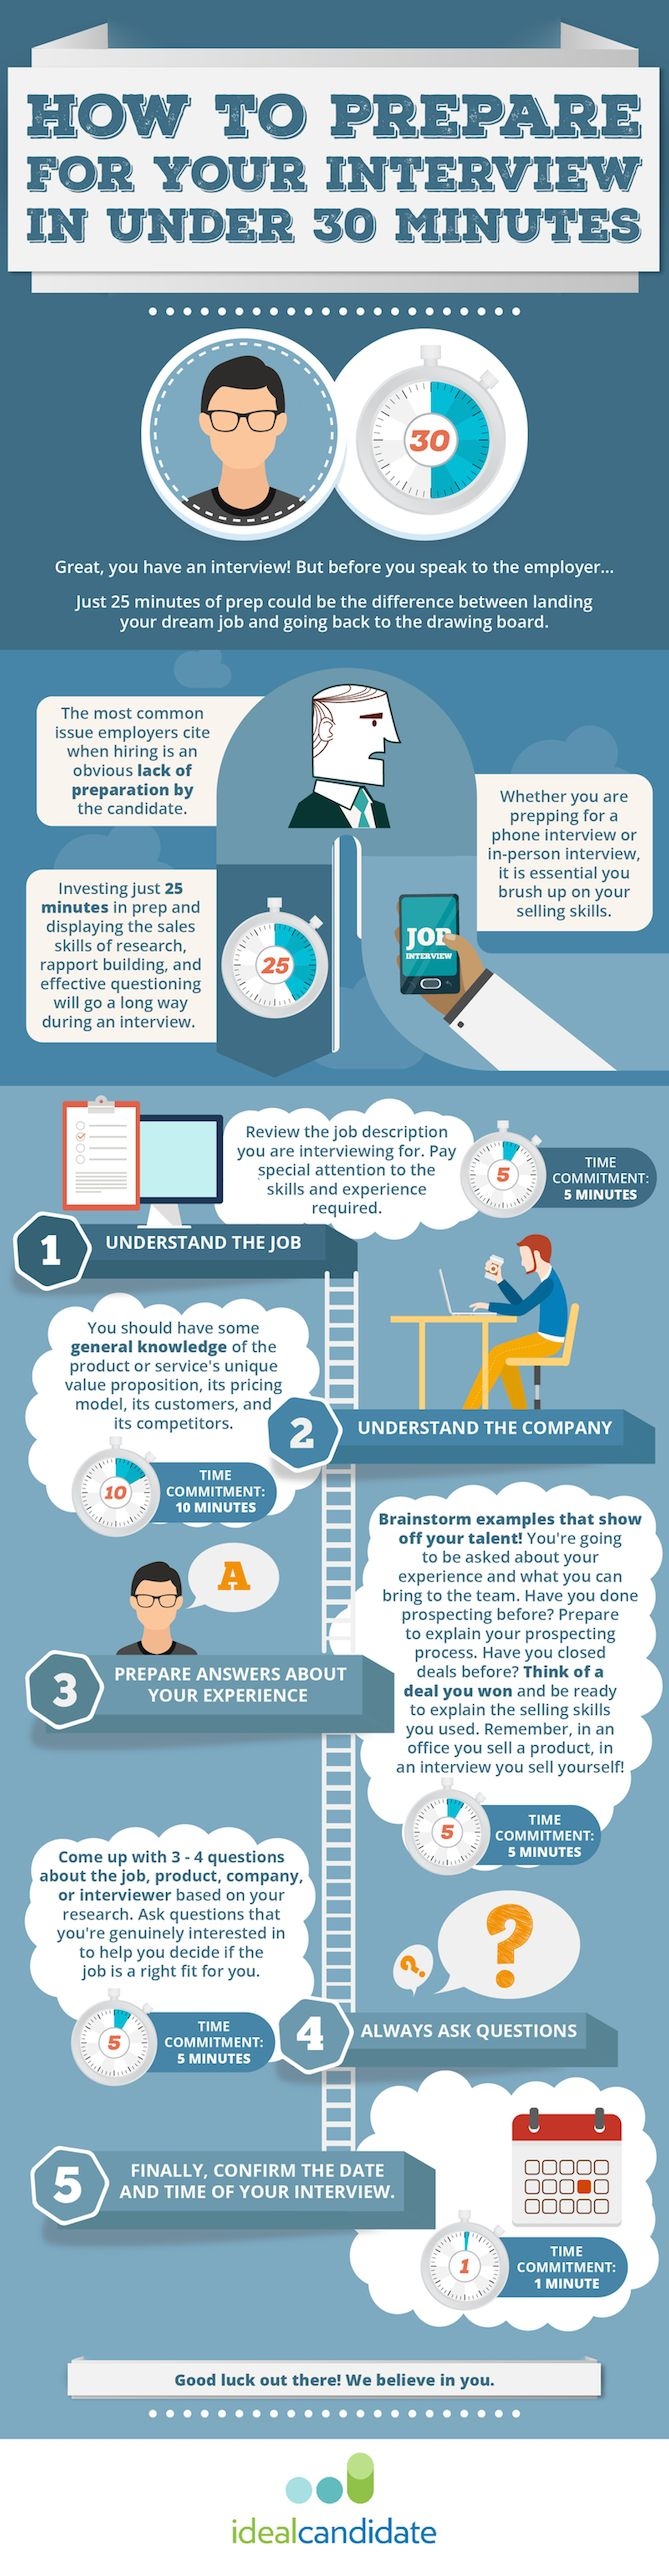 How to Prepare for a Job Interview: The 25-Minute Routine That Can Make a Big Difference [Infographic] #Jobsearchtips